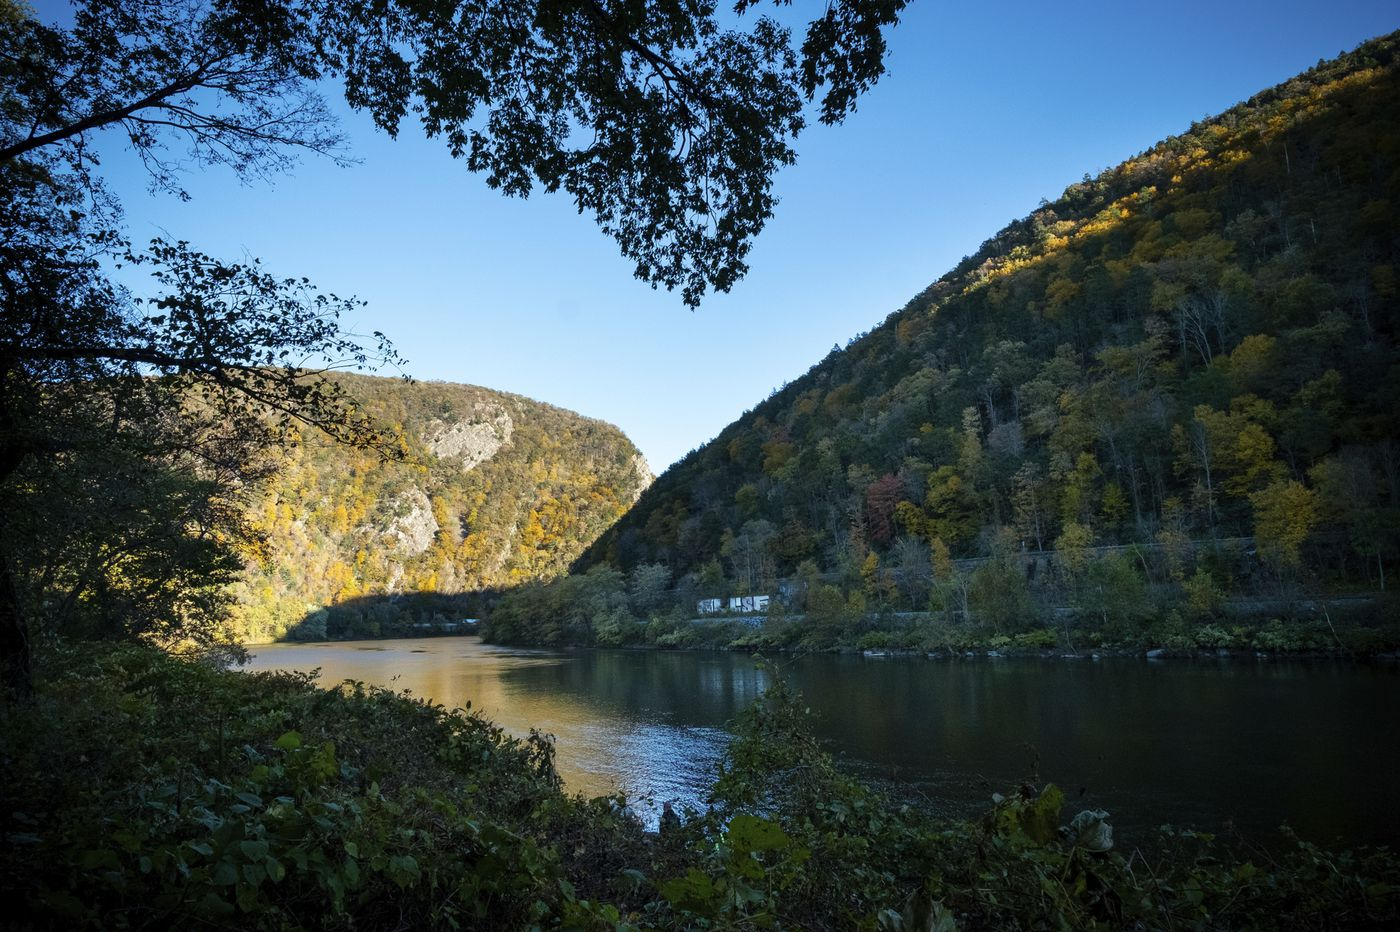 Budget deal signed by Trump includes $6M for Delaware River protection